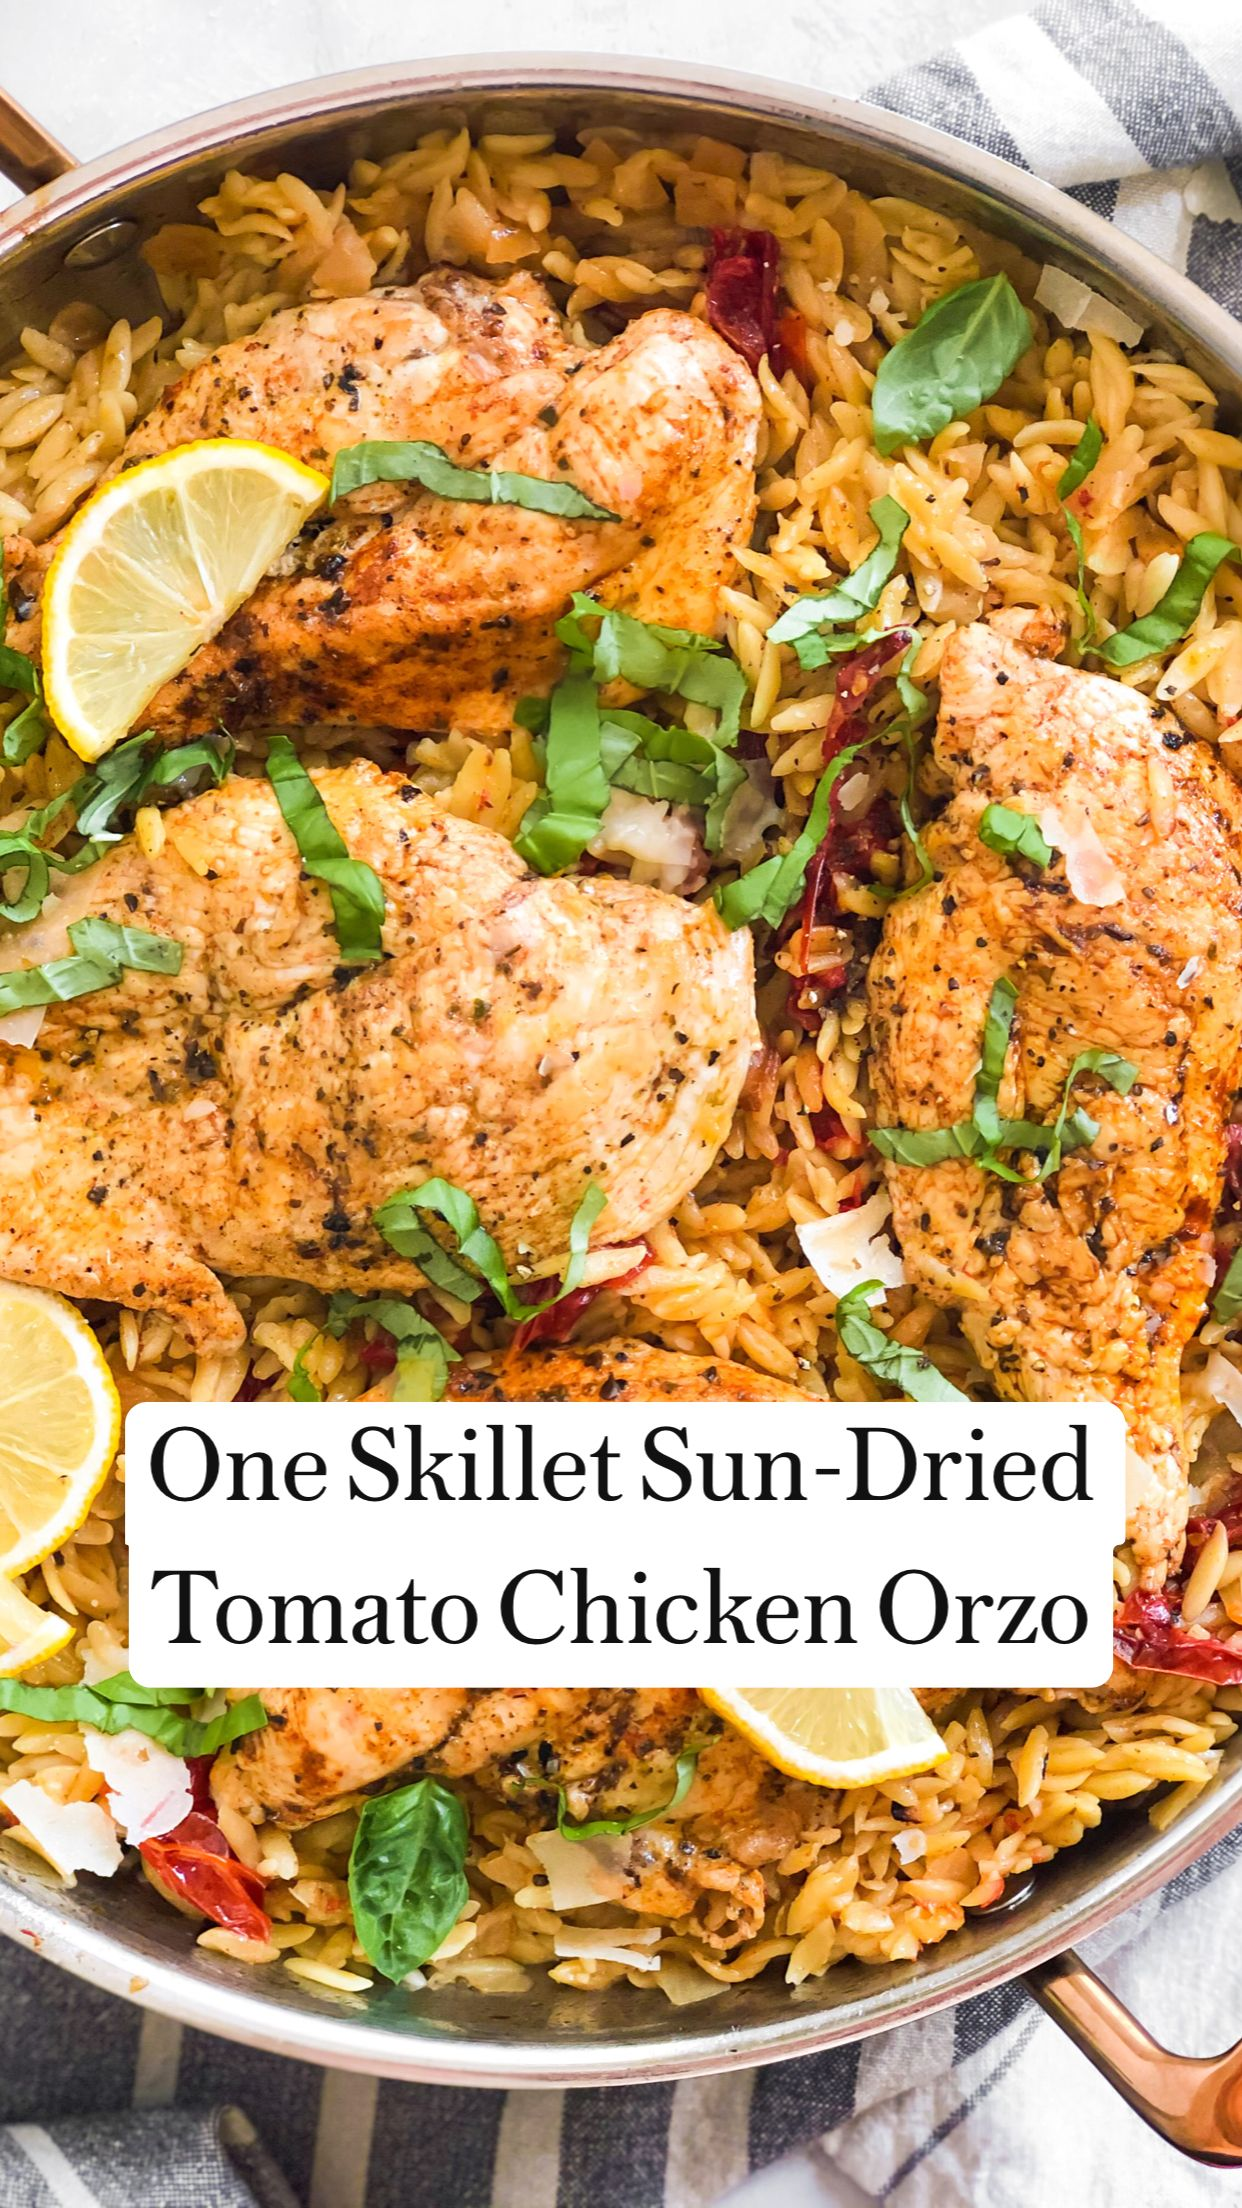 One Skillet Sun-Dried Tomato Chicken Orzo